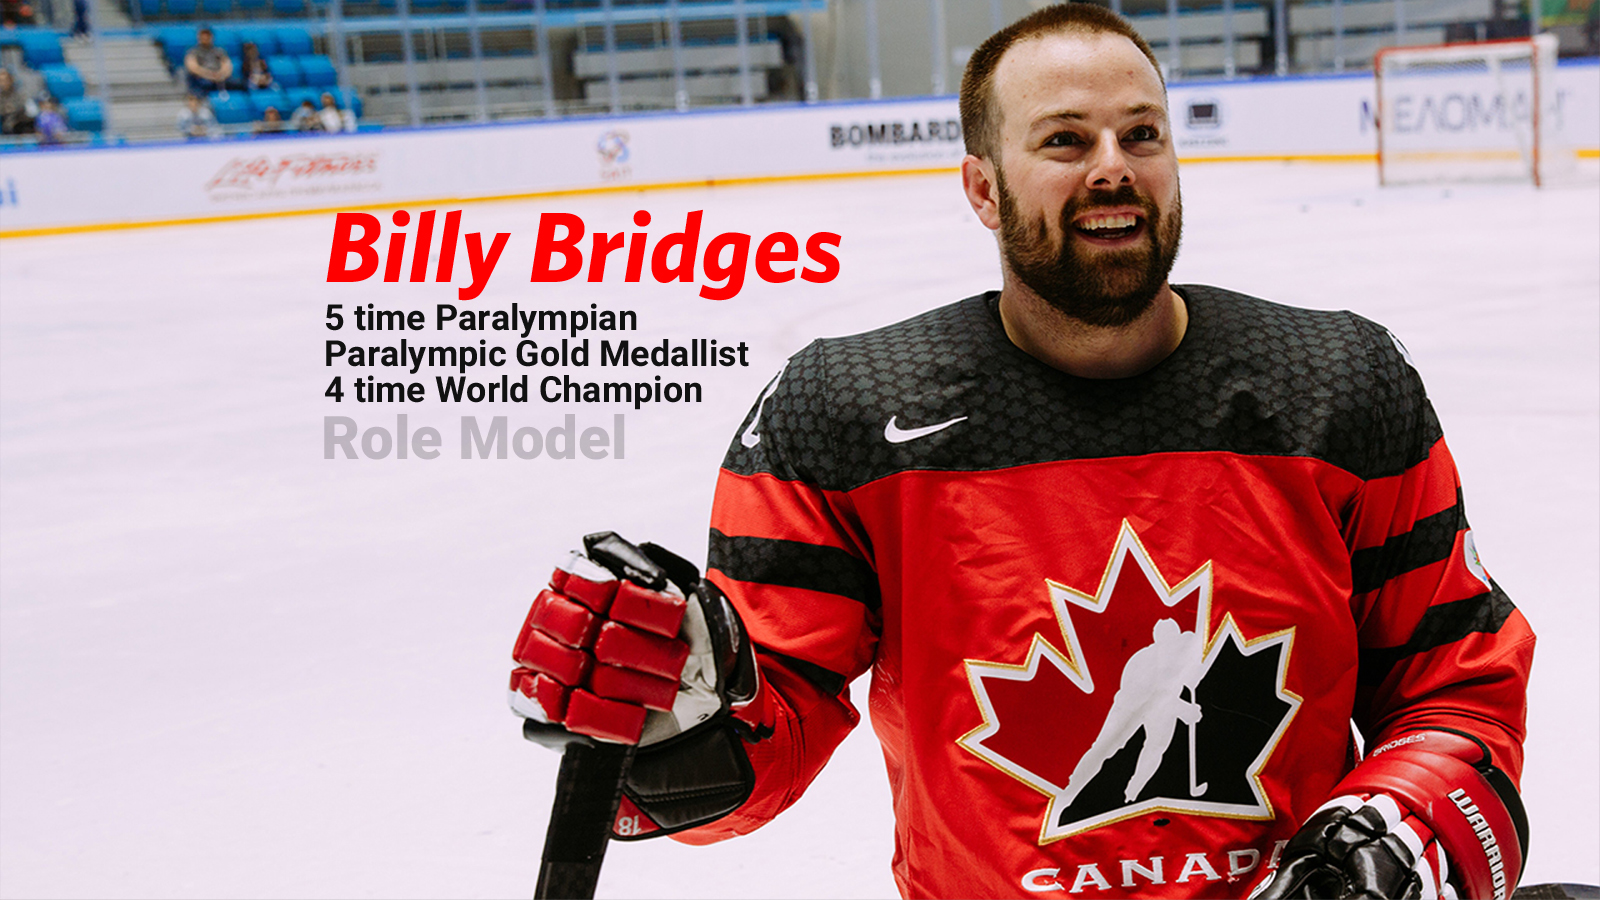 Billy Bridges